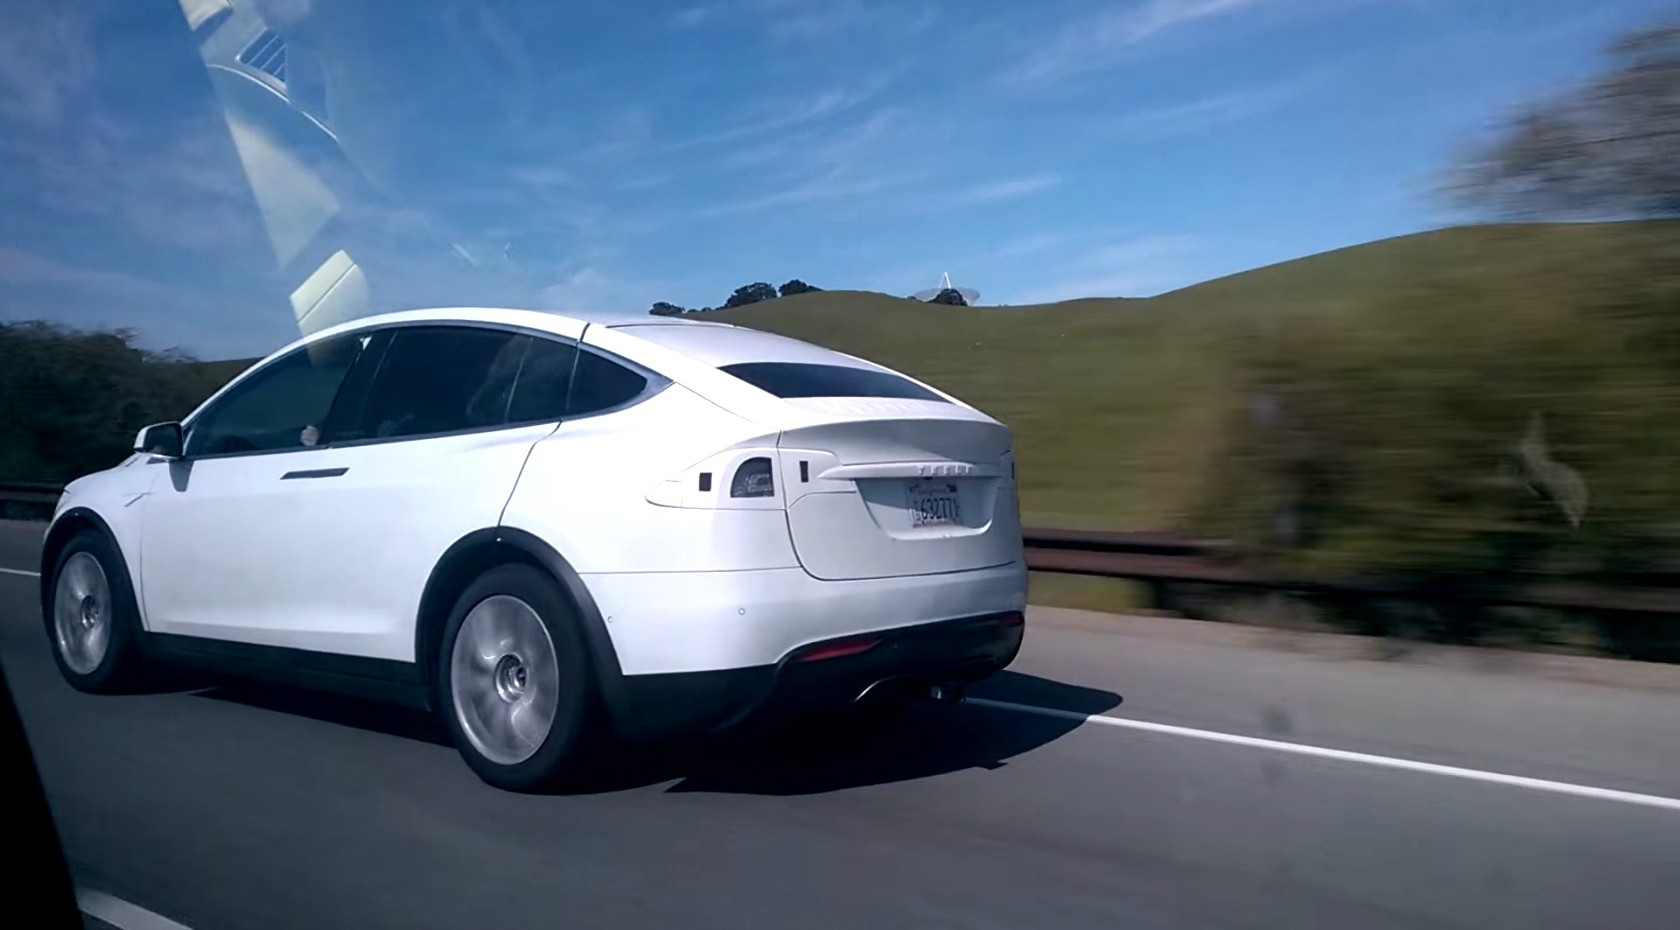 2016 Tesla Model X Spied on Video, Looks Ready for Production - autoevolution